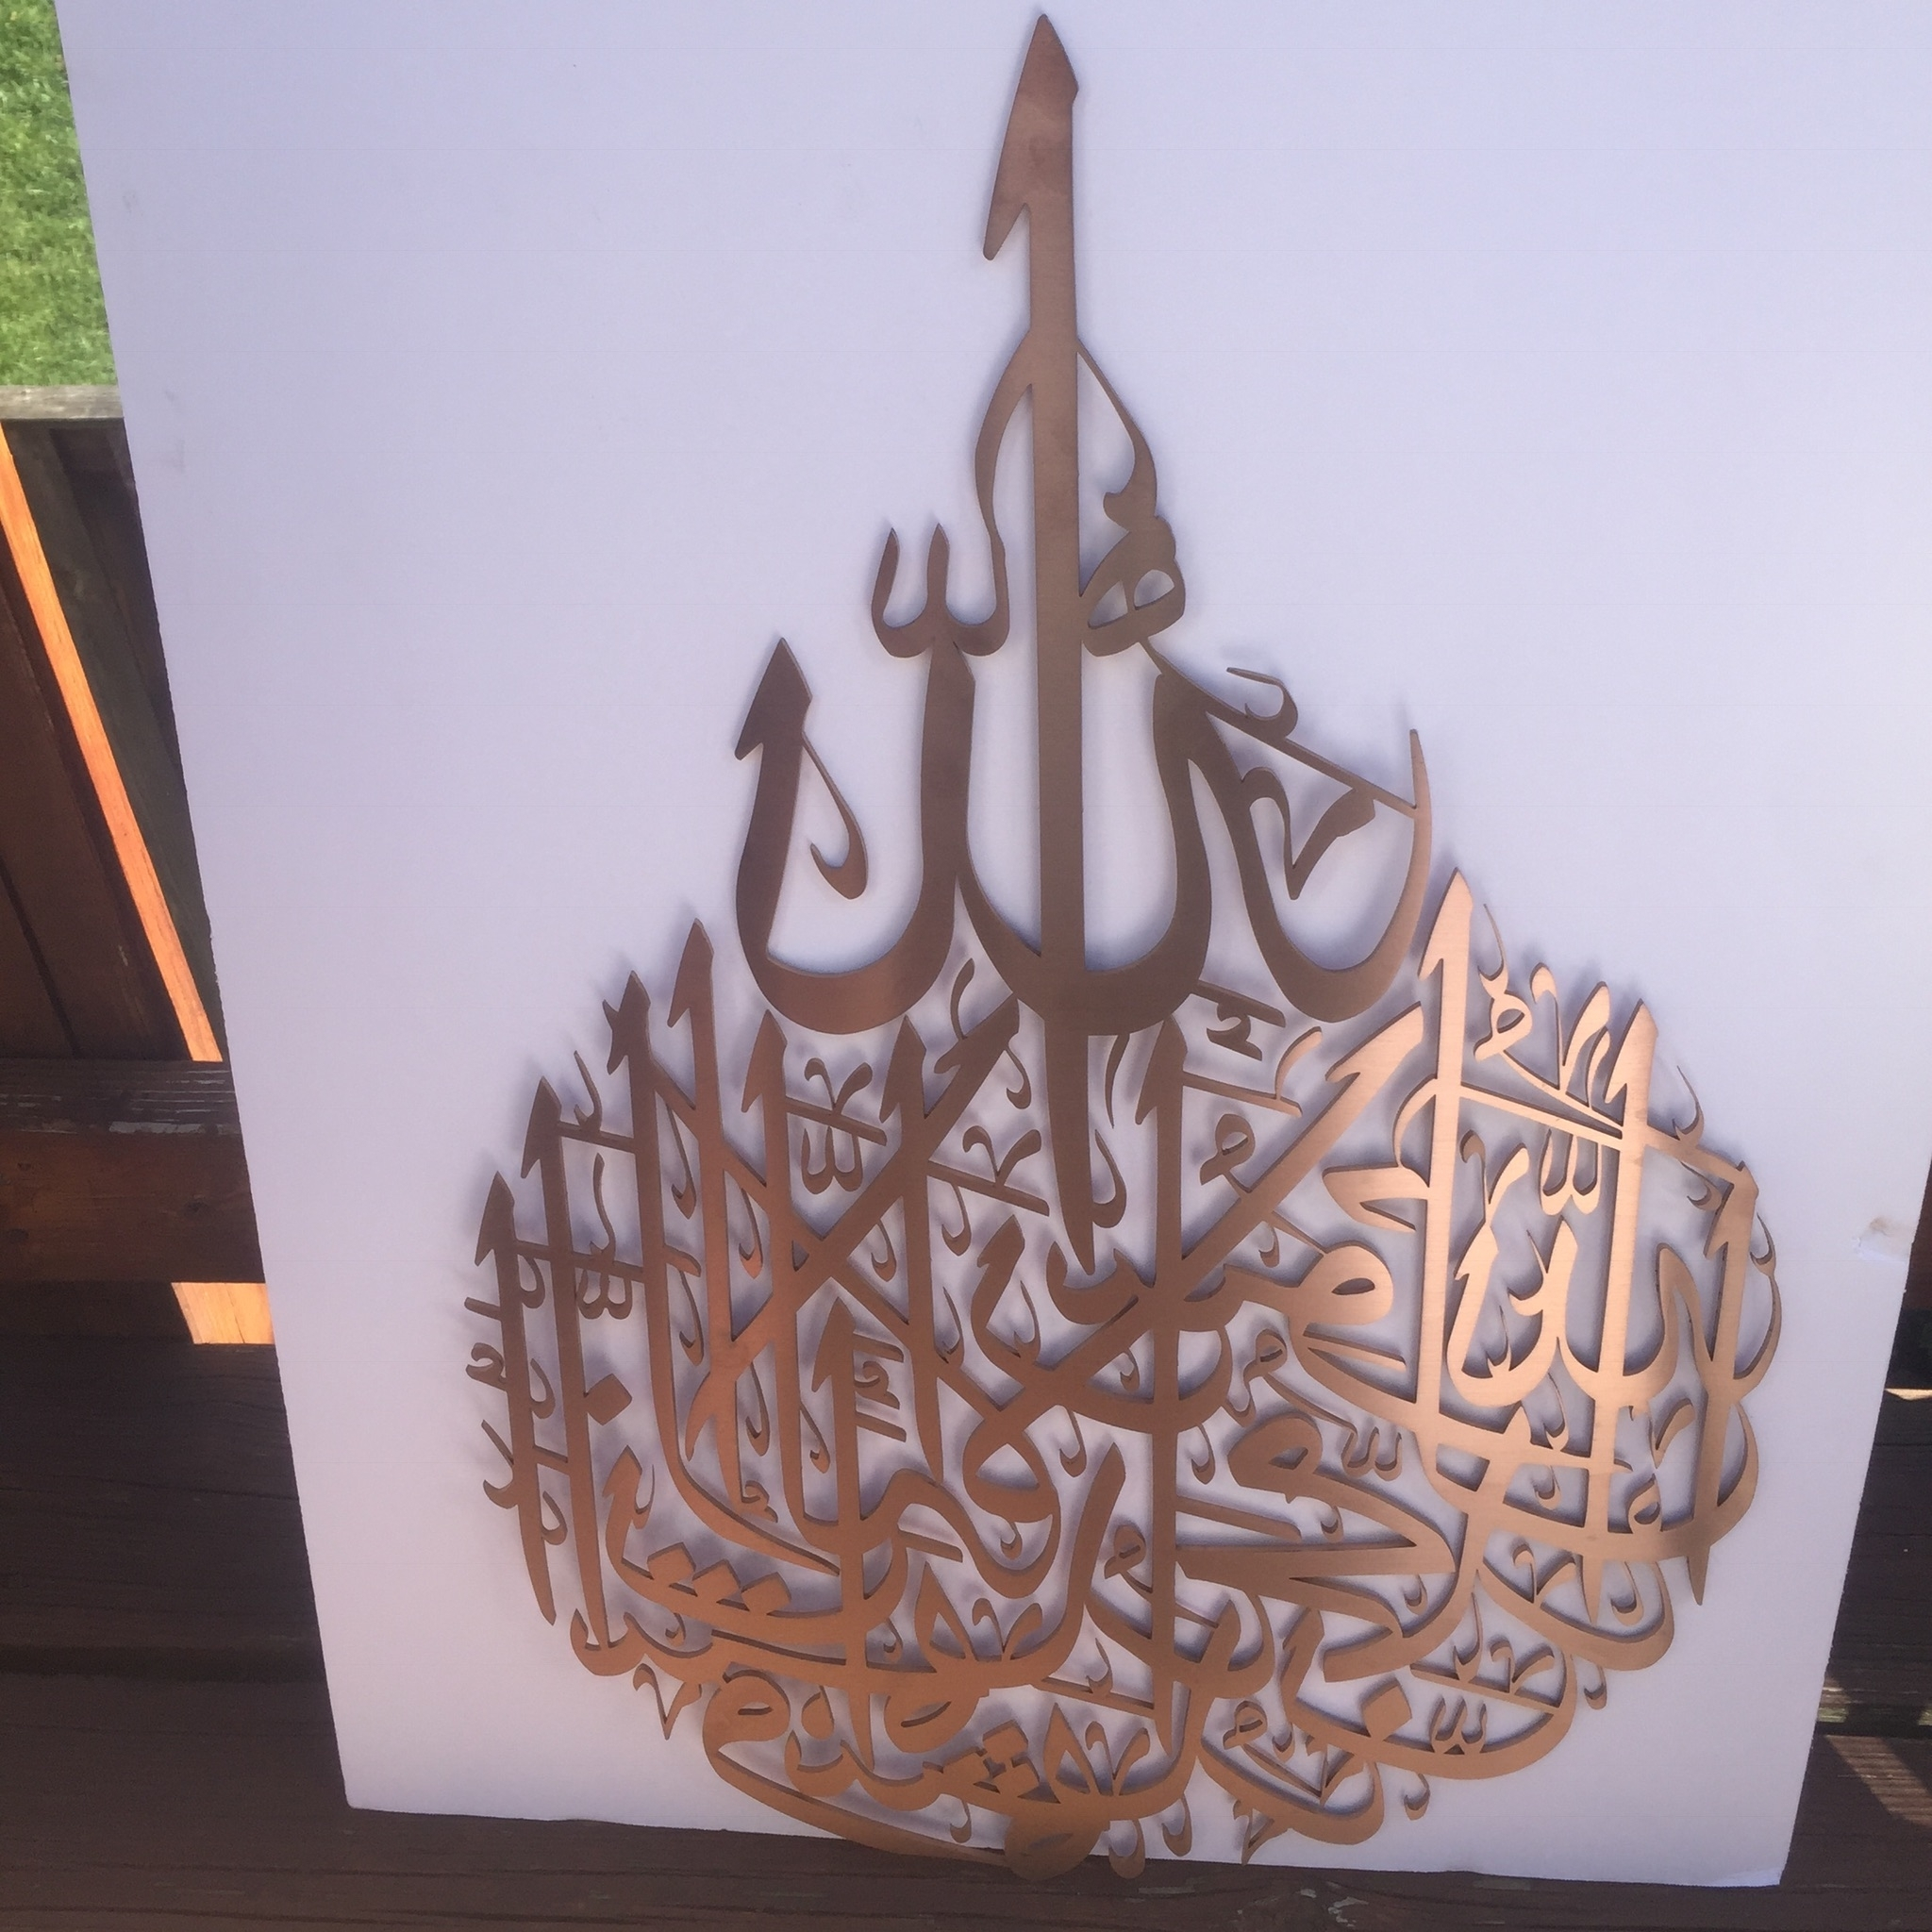 Fretwork Wall Art Within 2017 Shahada / Kalima Islamic Calligraphy Modern Islamic Stainless (Gallery 9 of 15)